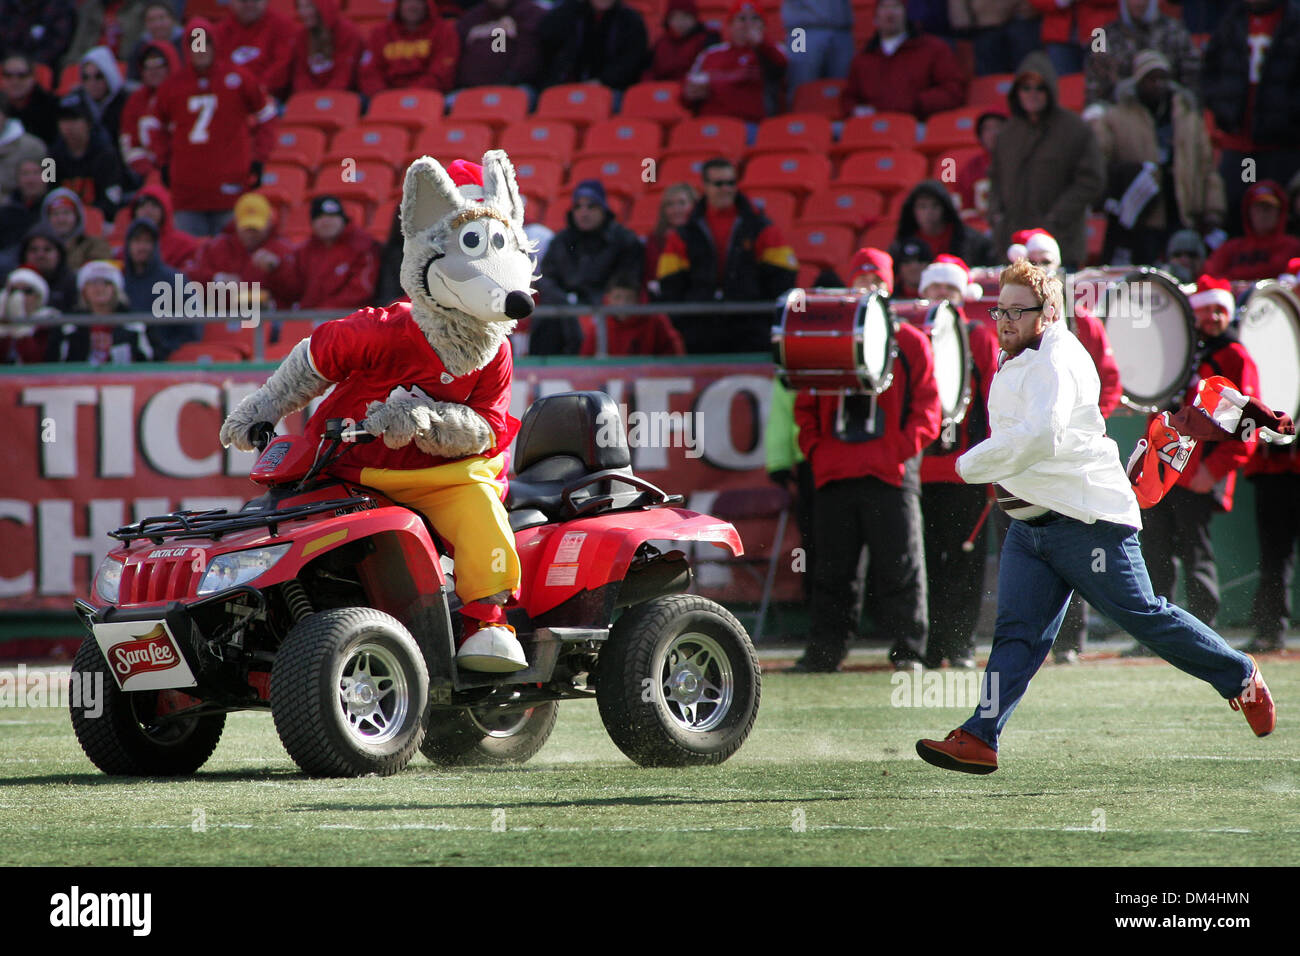 Kansas City Chiefs Mascot High Resolution Stock Photography And Images Alamy